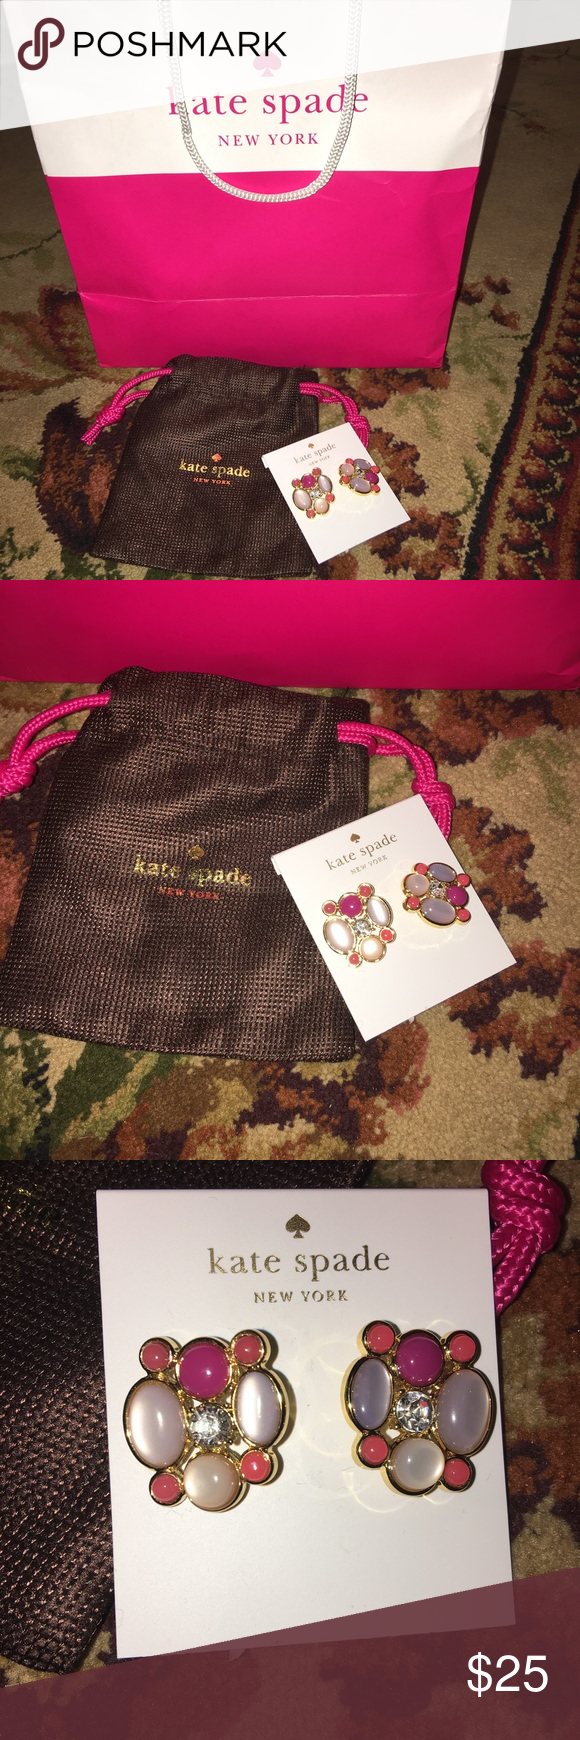 New authentic Kate Spade earrings! Comes from a smoke free home! Brand new! The listing does include the mini dust bag for the earrings as well! kate spade Jewelry Earrings